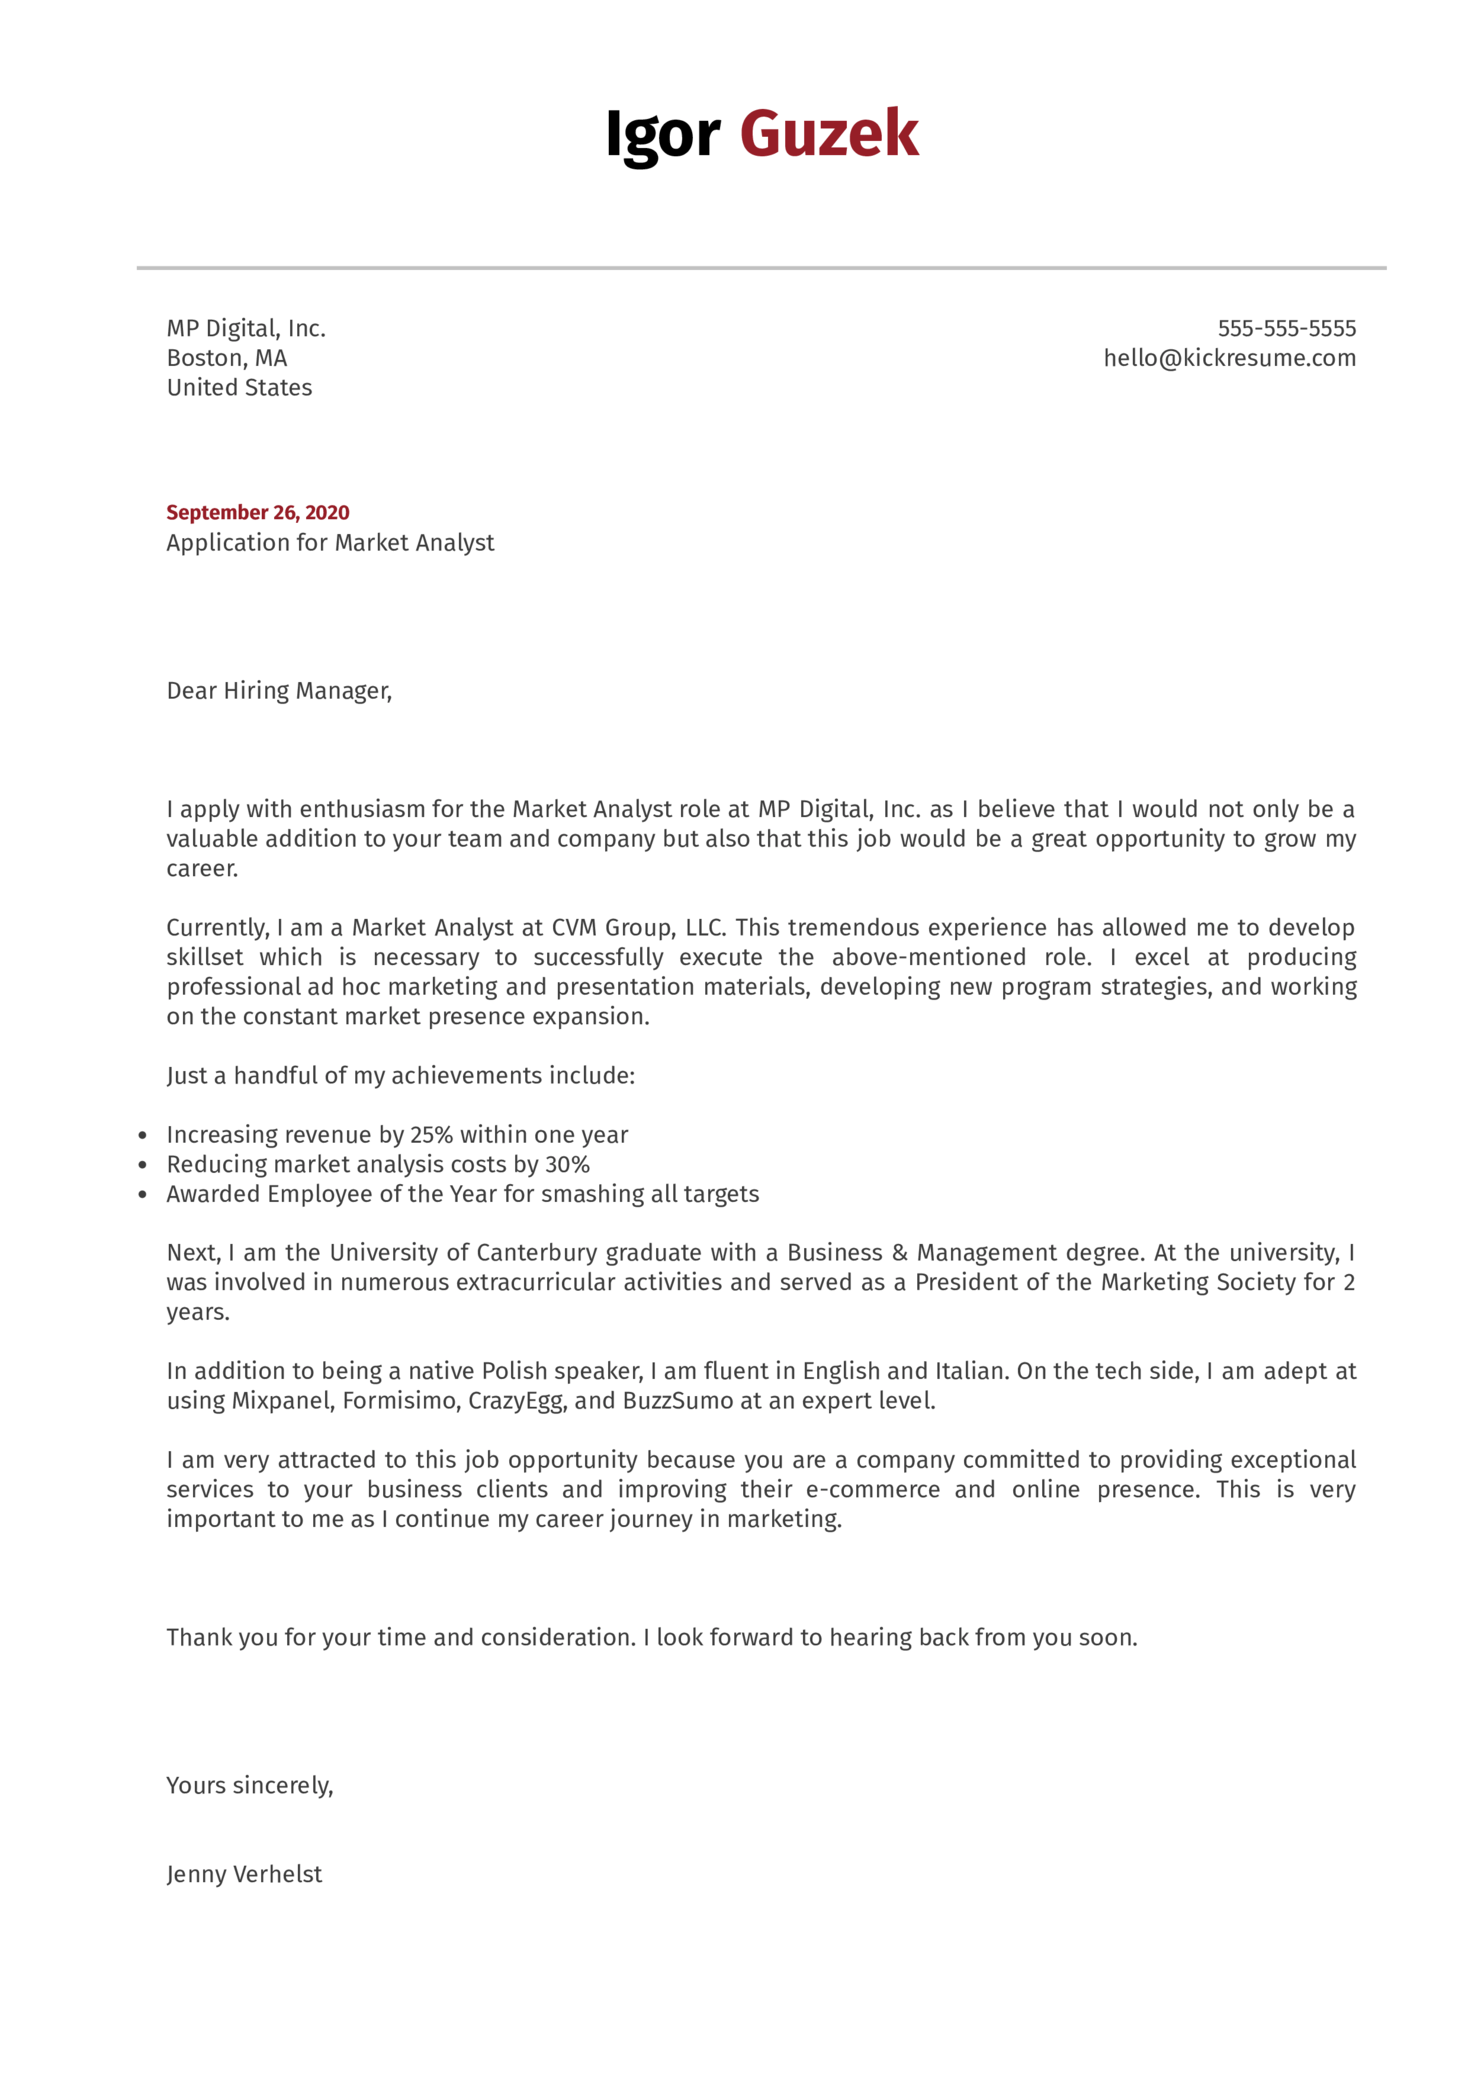 Market Analyst Cover Letter Example